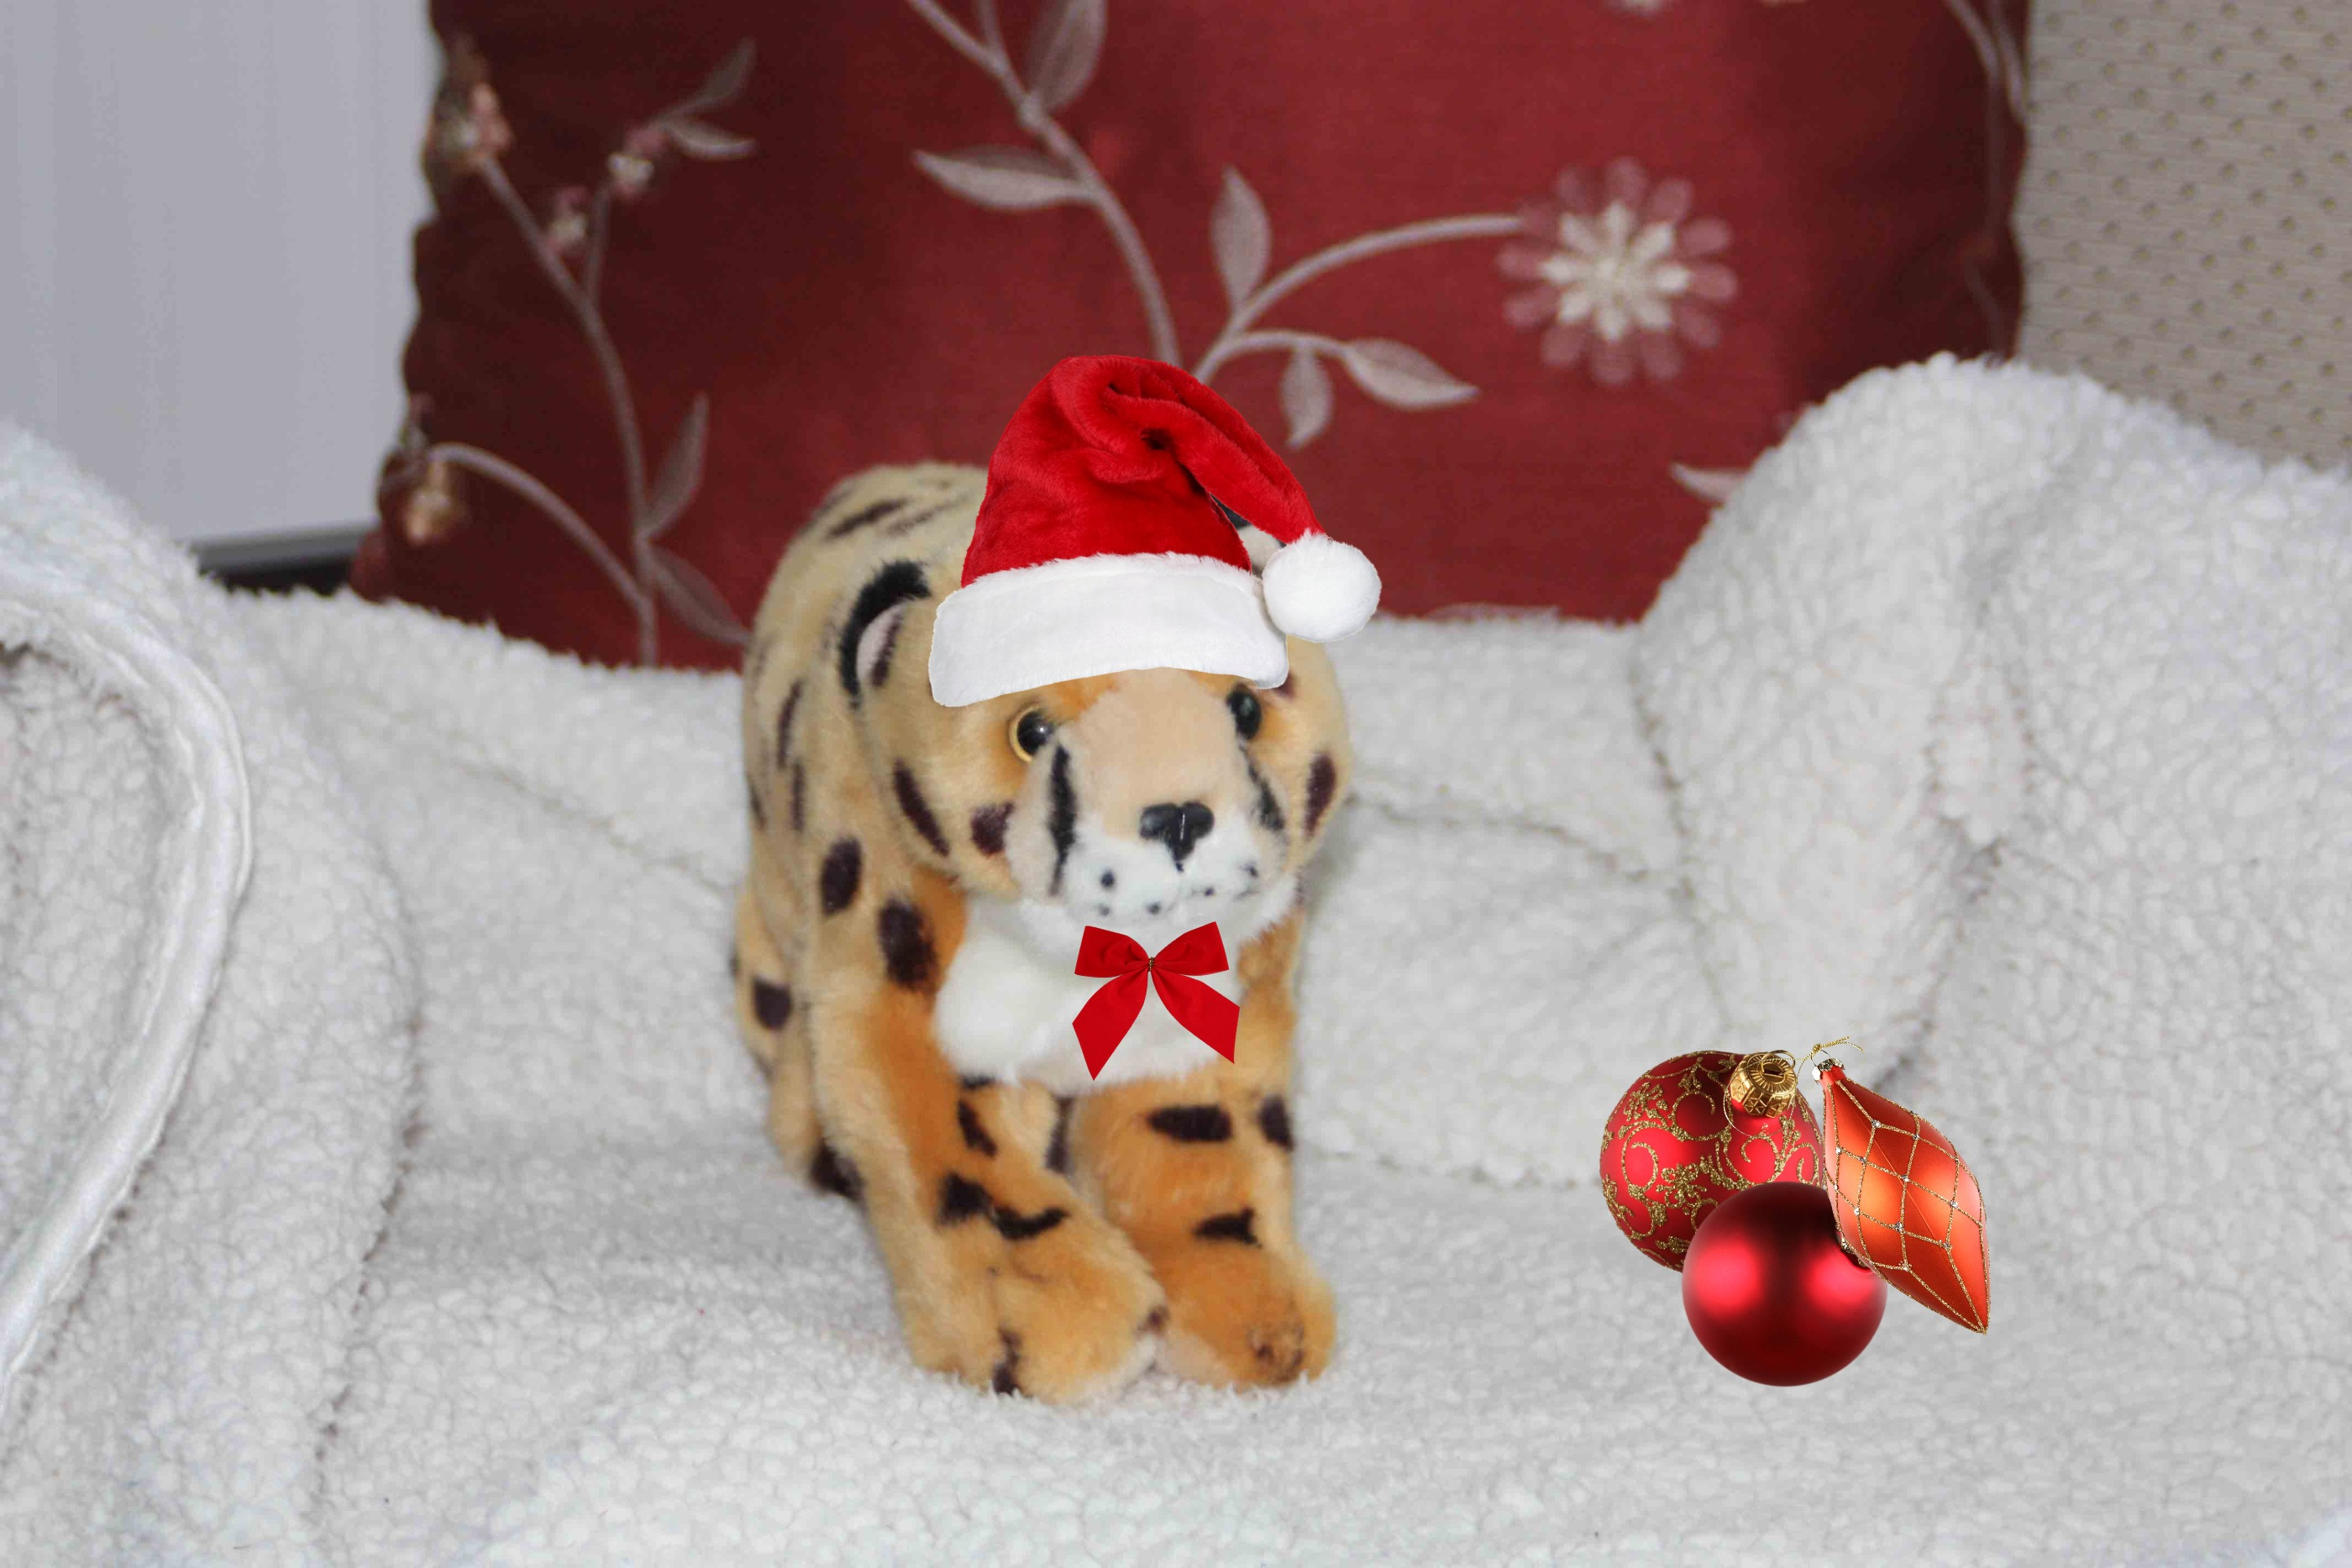 The Tiniest Tiger's 9 (now it is 3) Days of Christmas!